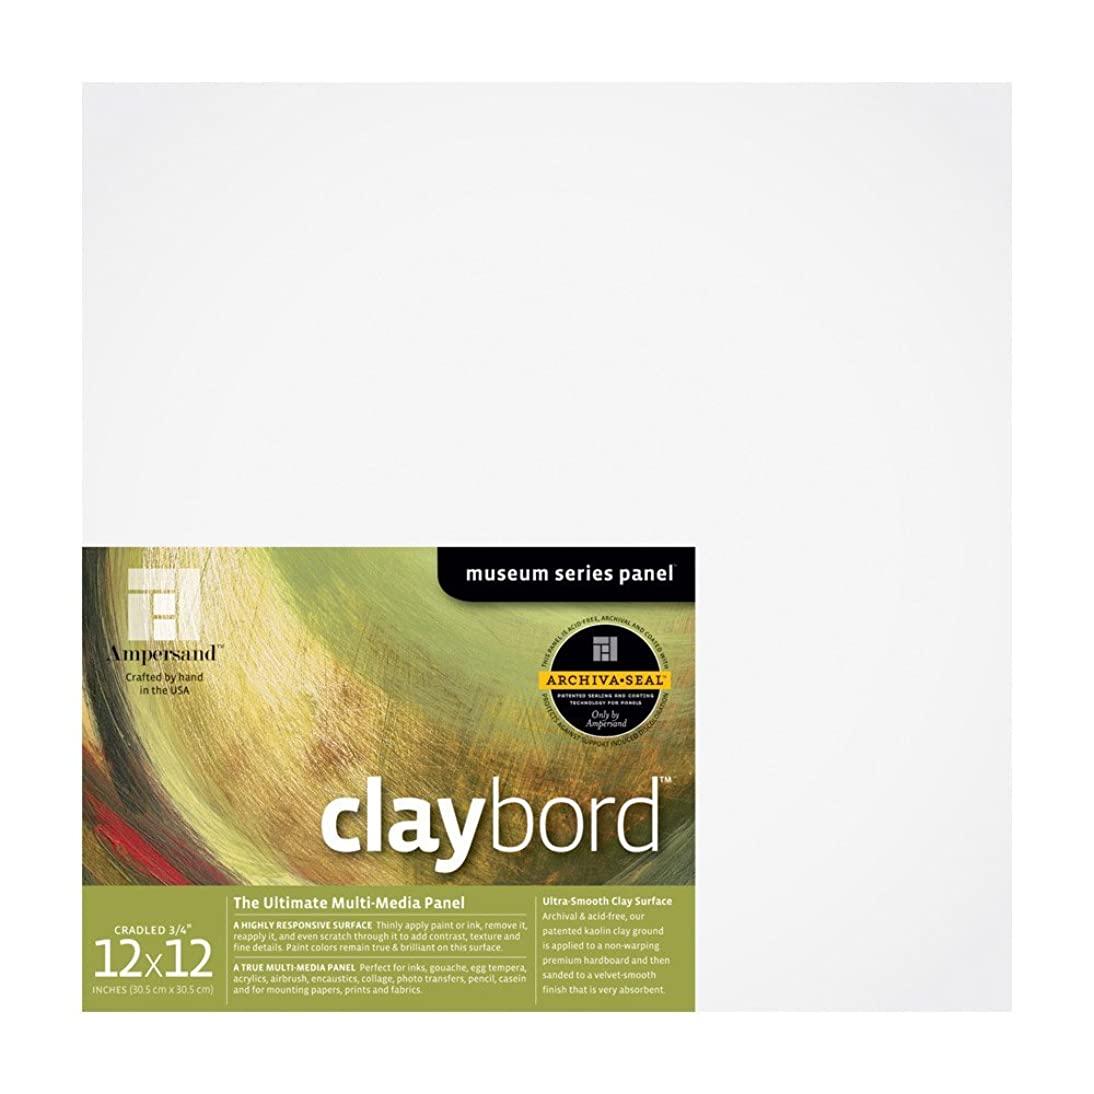 Ampersand Museum Series Claybord Panels for Paint and Ink, 3/4 inch Depth Cradled, 12X12 inch (CBSC122) yzxk00954139118